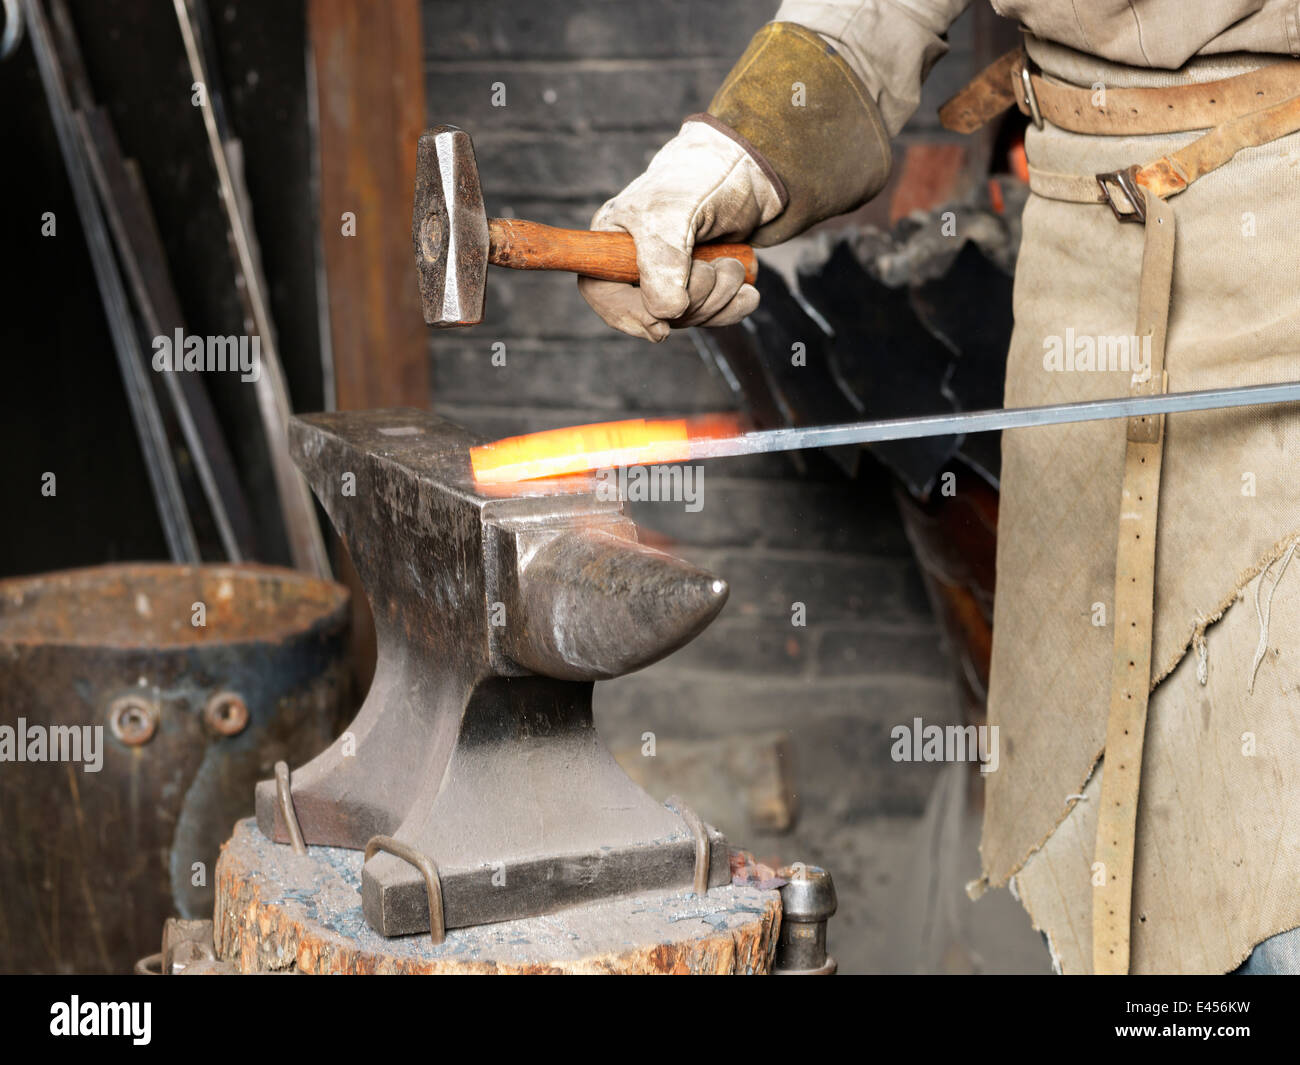 Cropped image of blacksmiths hammering a red hot metal rod - Stock Image